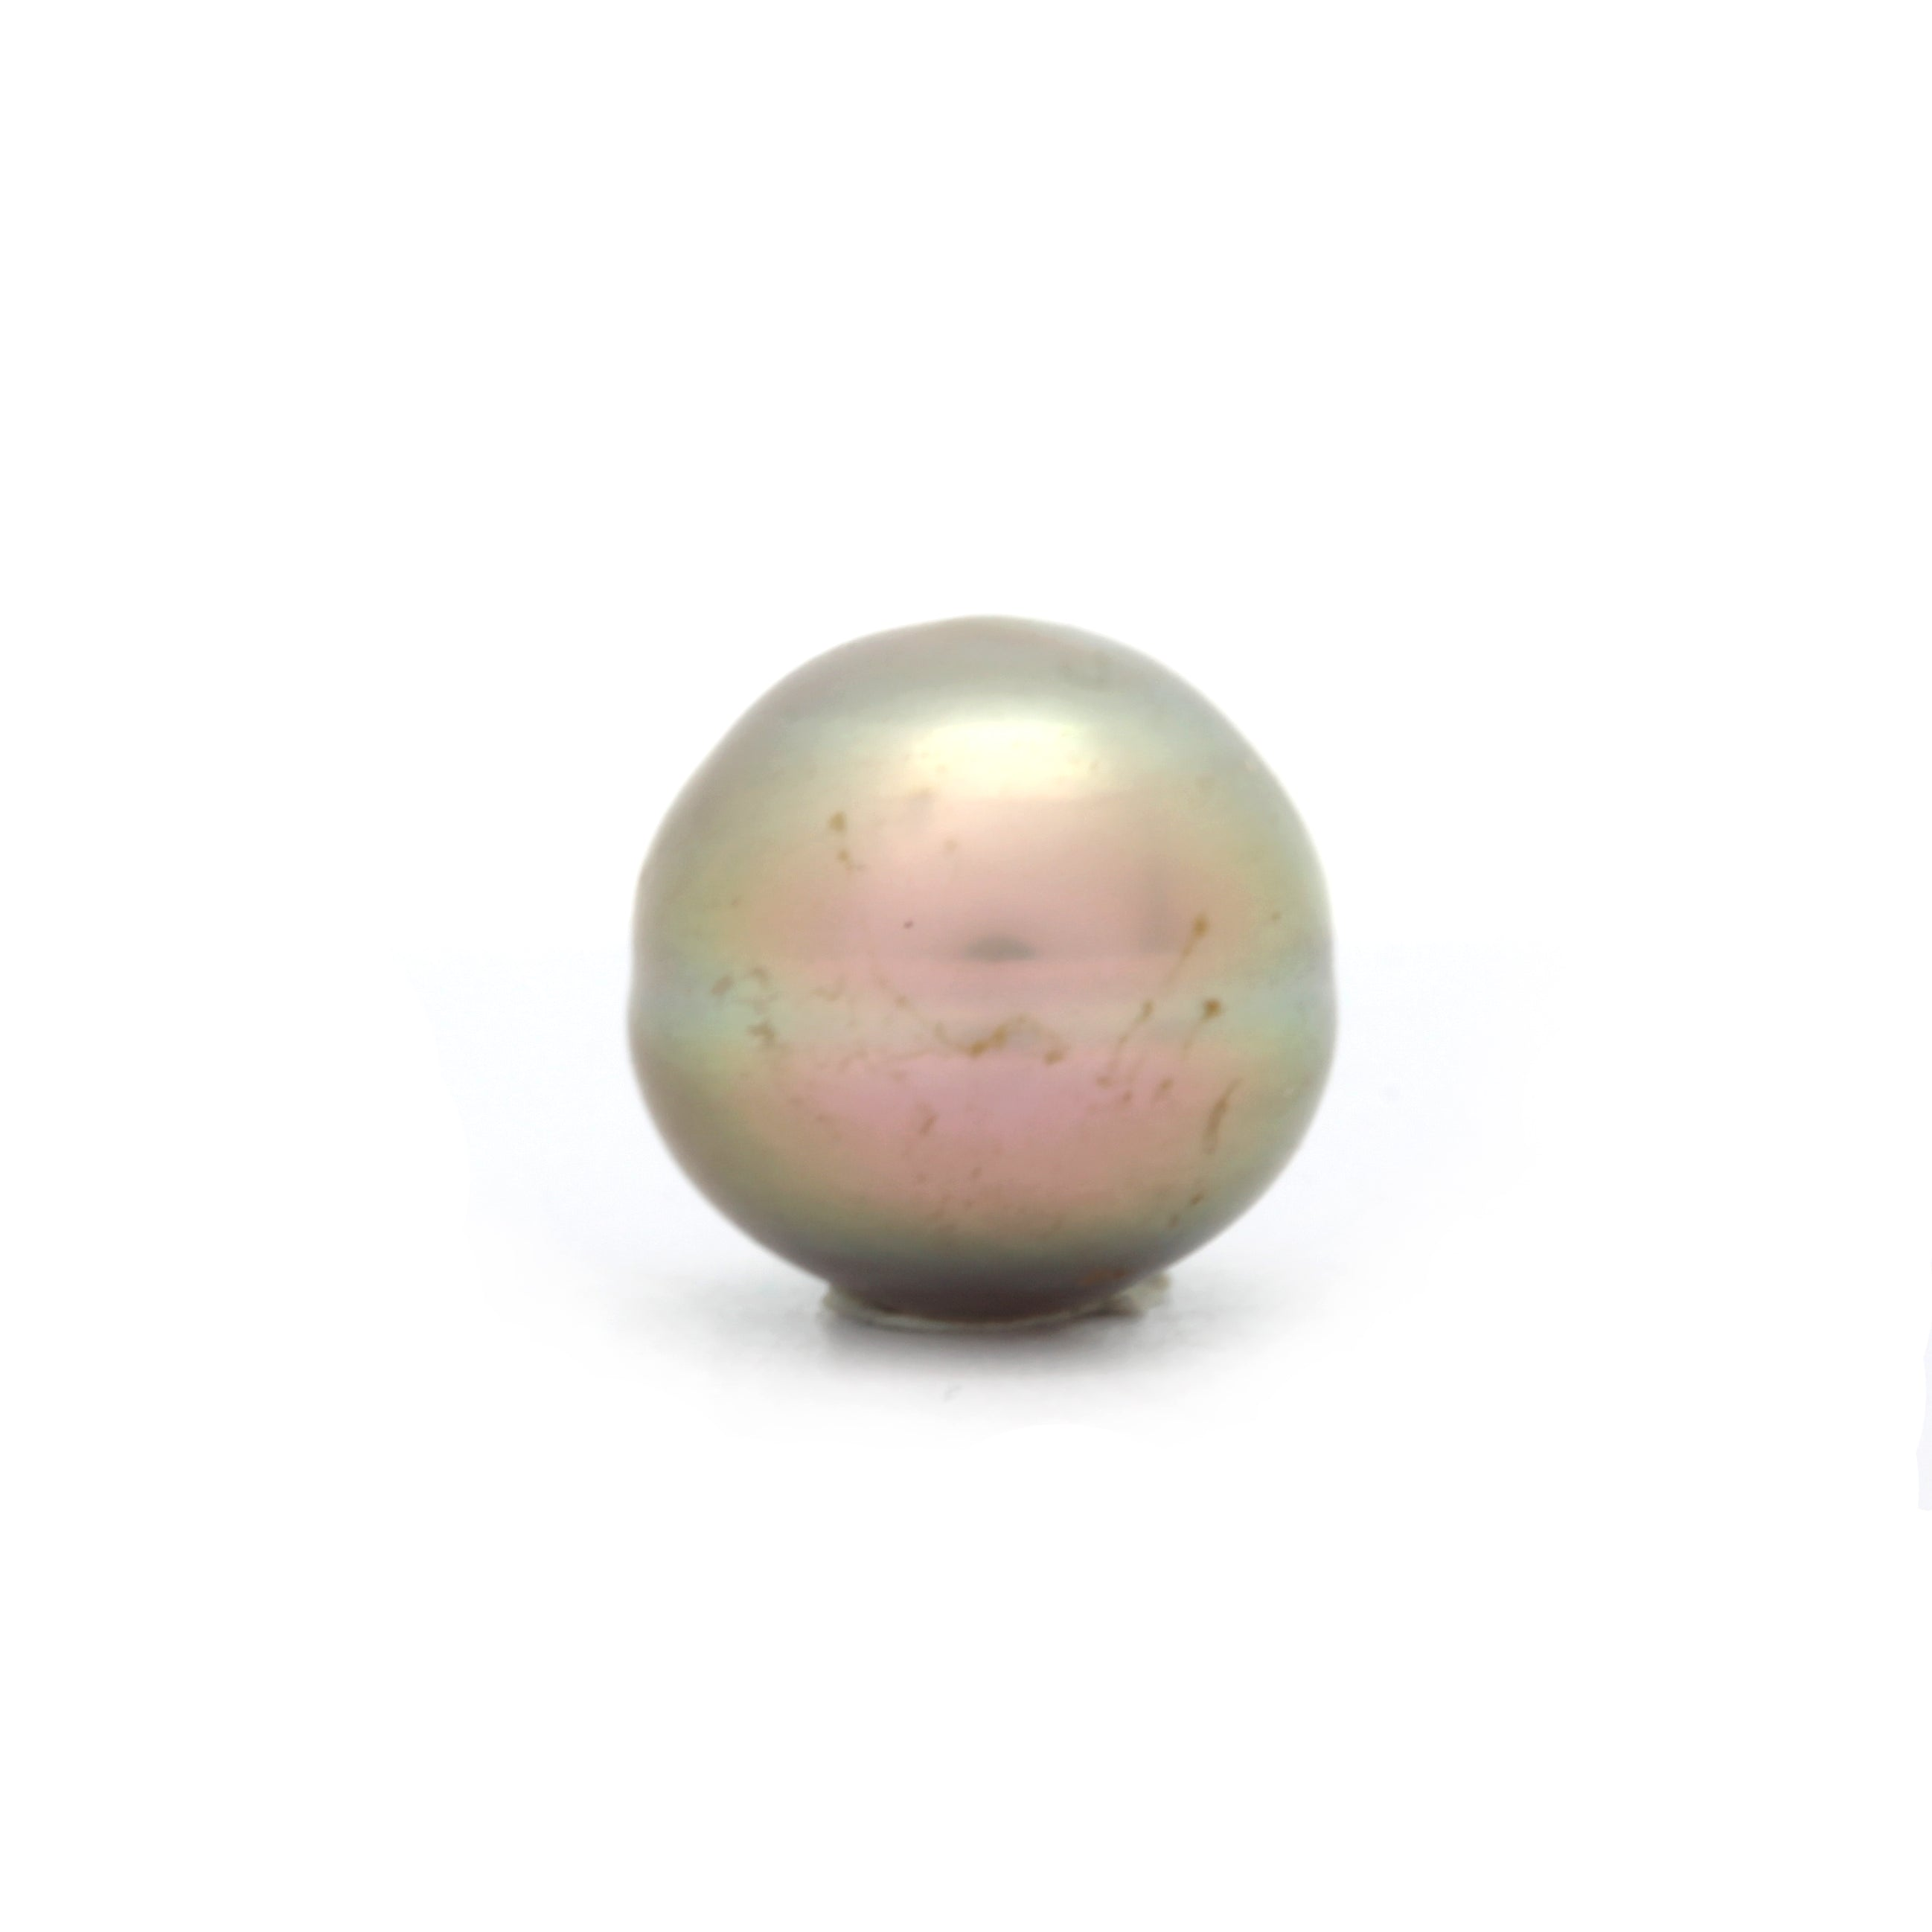 Lot of 4 Baroque Cortez Pearls from 2020 HARVEST